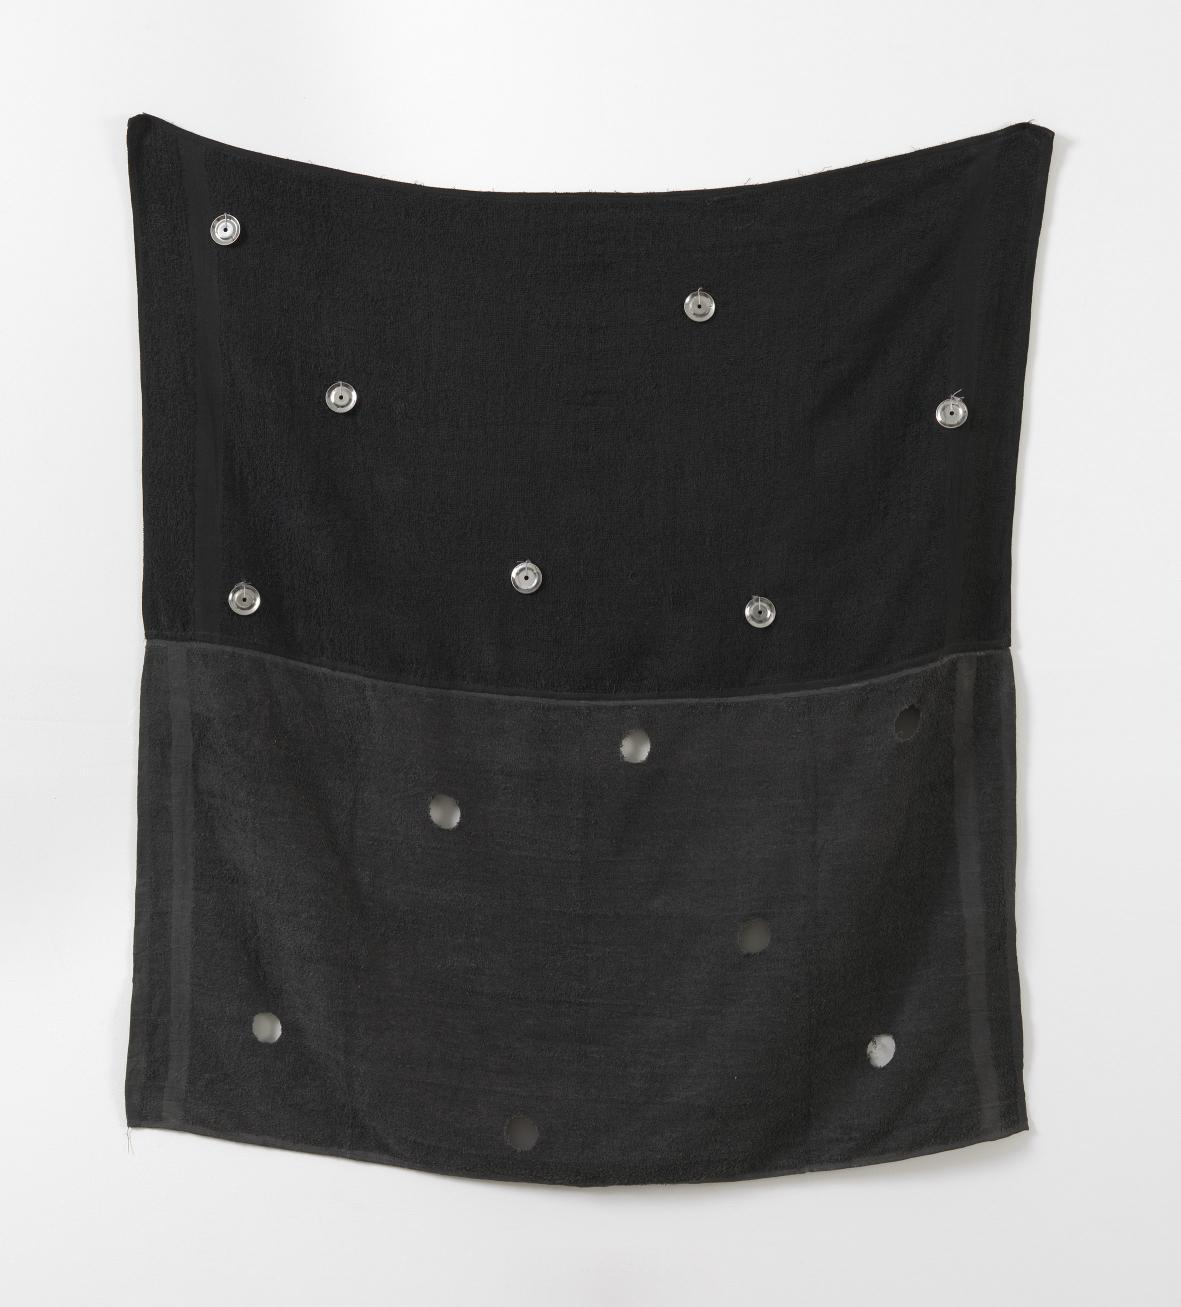 adjutor:  Paul Lee,  Untitled (two towels with tambourine bells), 2010,  towels, cotton thread, ink, tambourine bells,  125 x 108 cm / 49 1/4 x 42 1/2 ins,  (MA-LEEPA-00011)